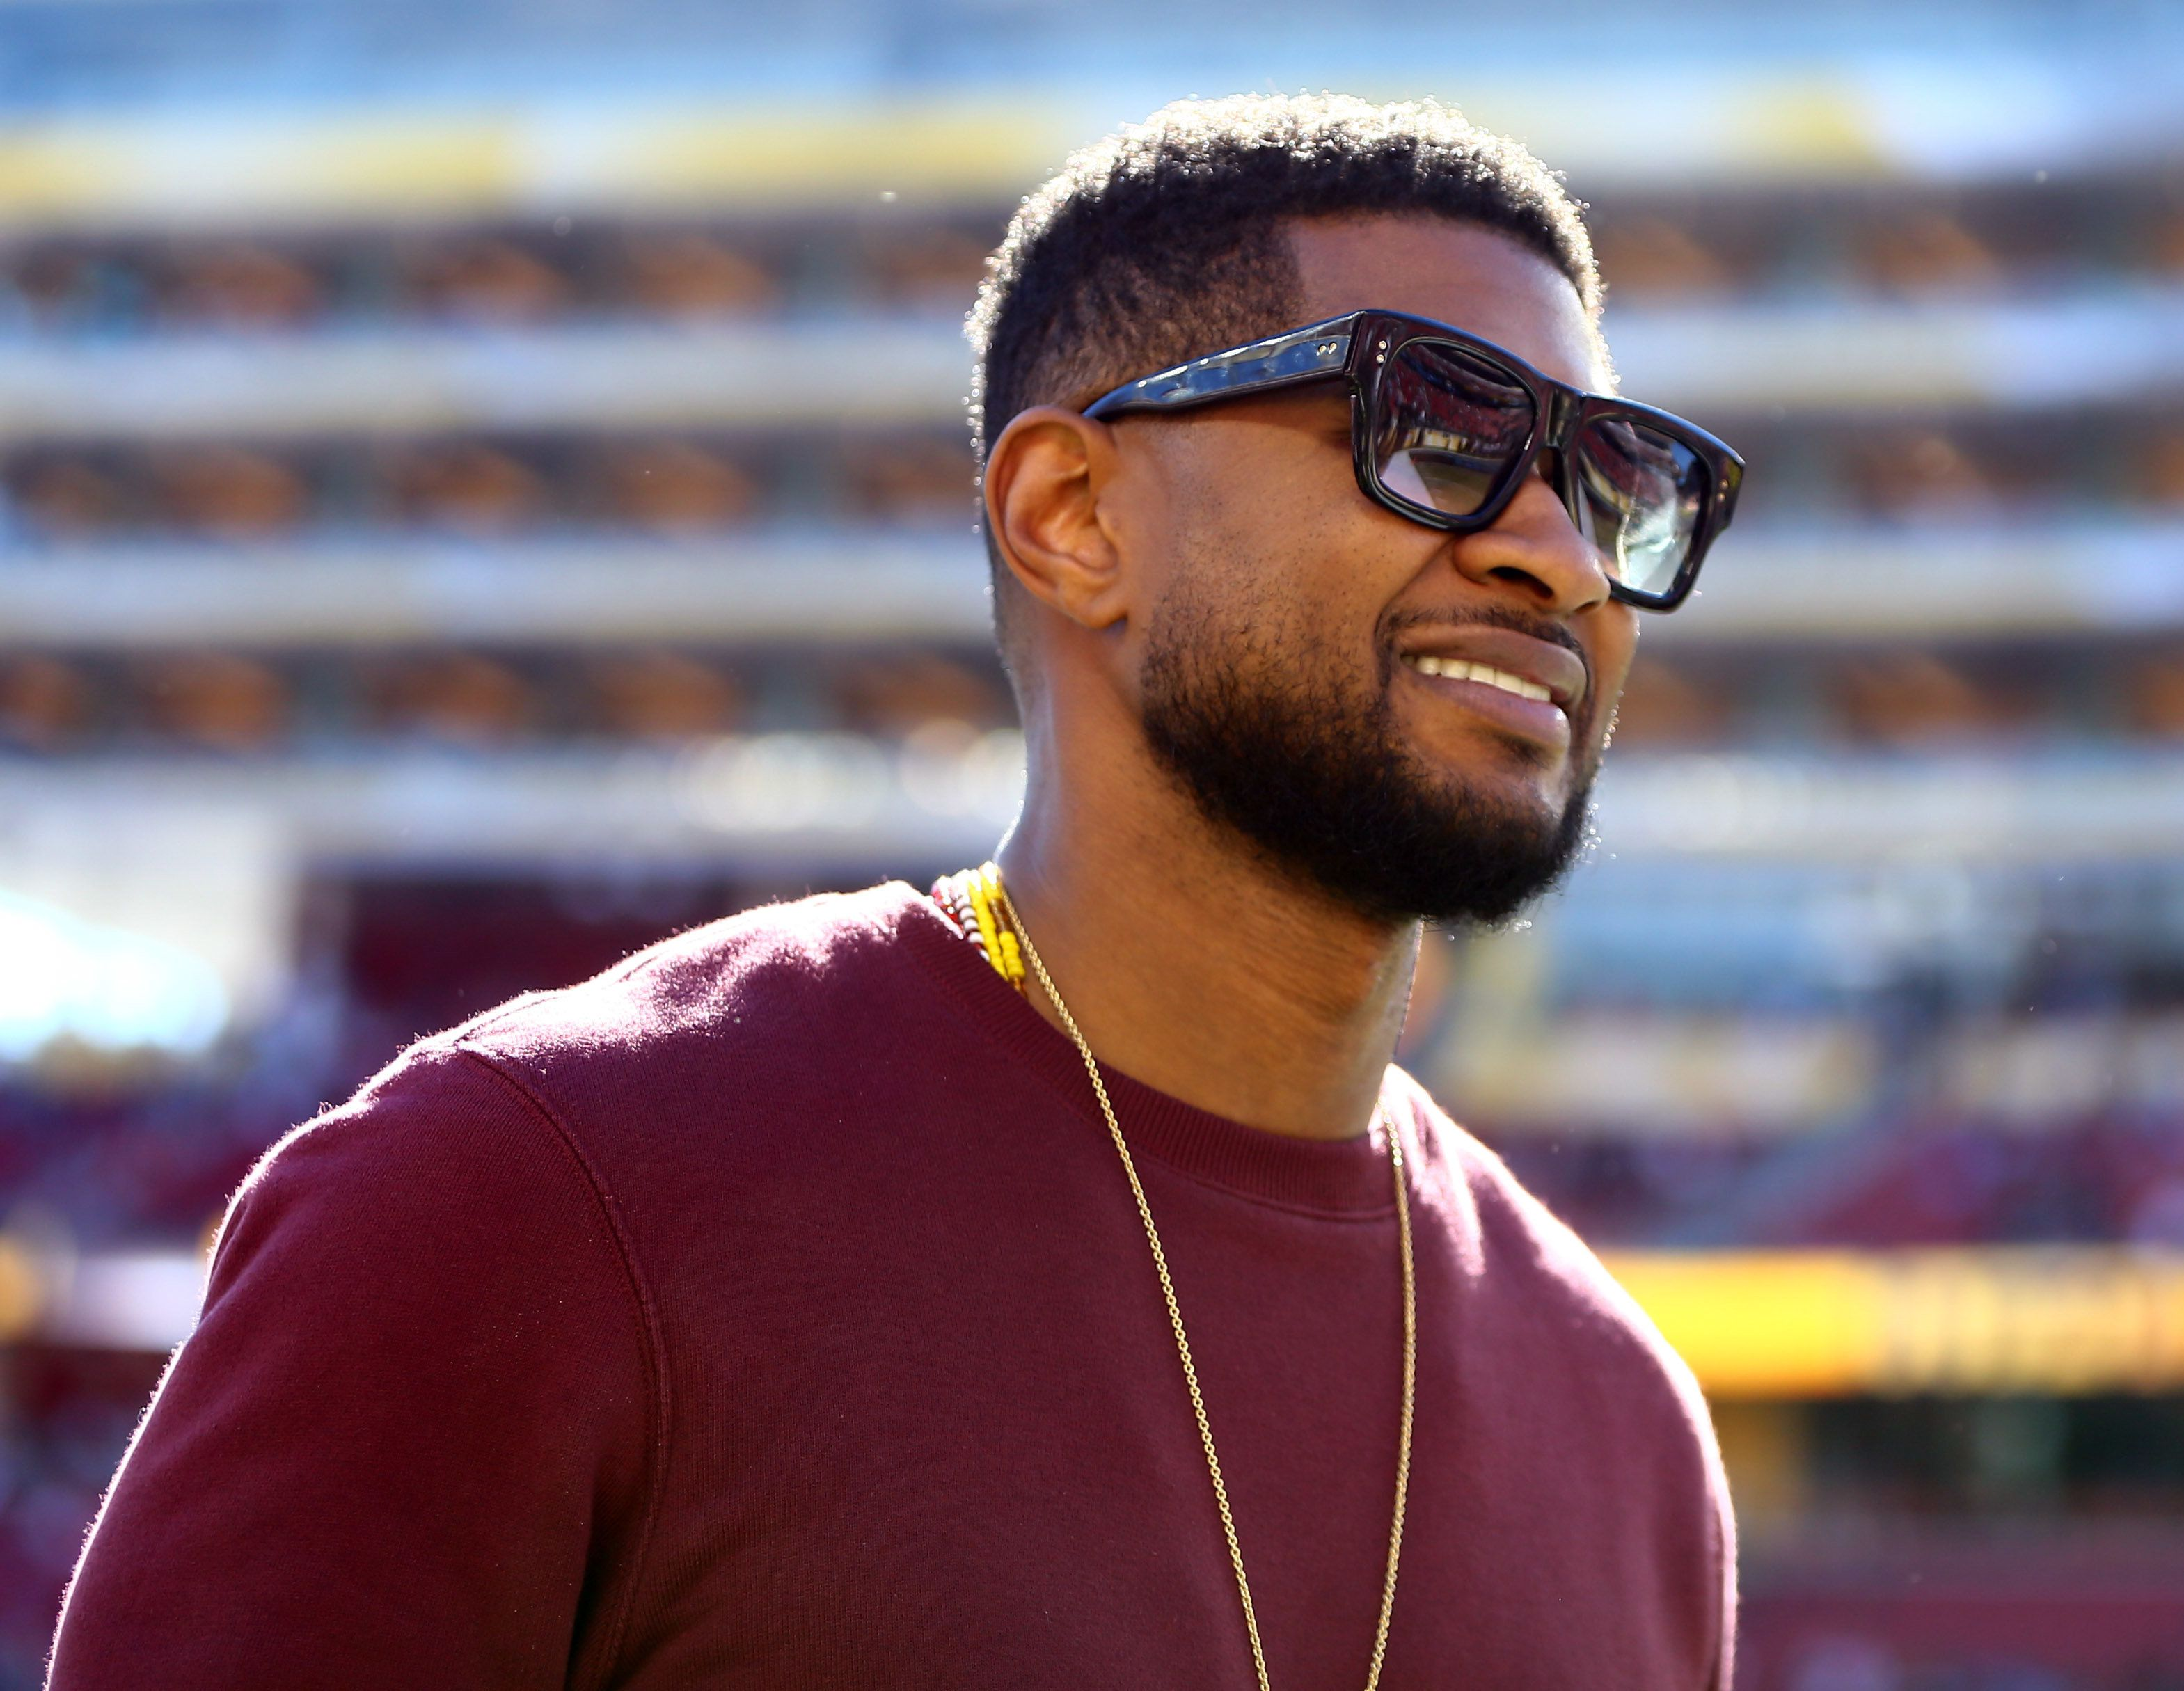 Feb 7, 2016; Santa Clara, CA, USA; Recording artist Usher on the field before Super Bowl 50 between the Carolina Panthers and the Denver Broncos at Levi's Stadium. Mandatory Credit: Mark J. Rebilas-USA TODAY Sports